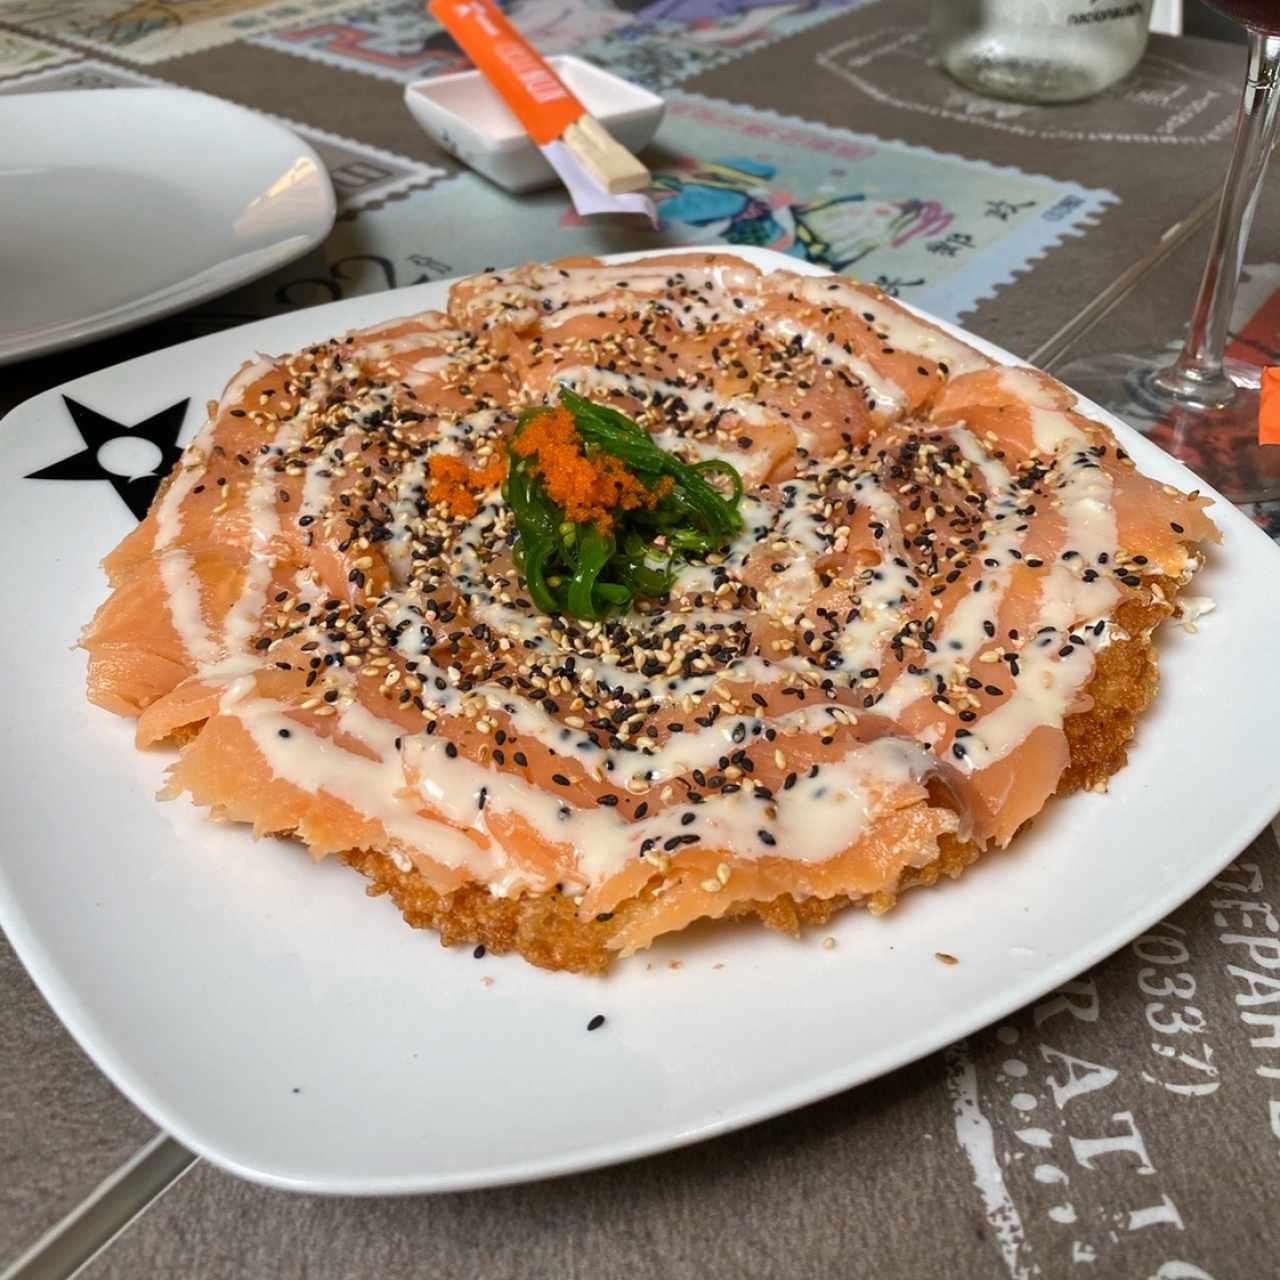 Pizza de salmon ahumado